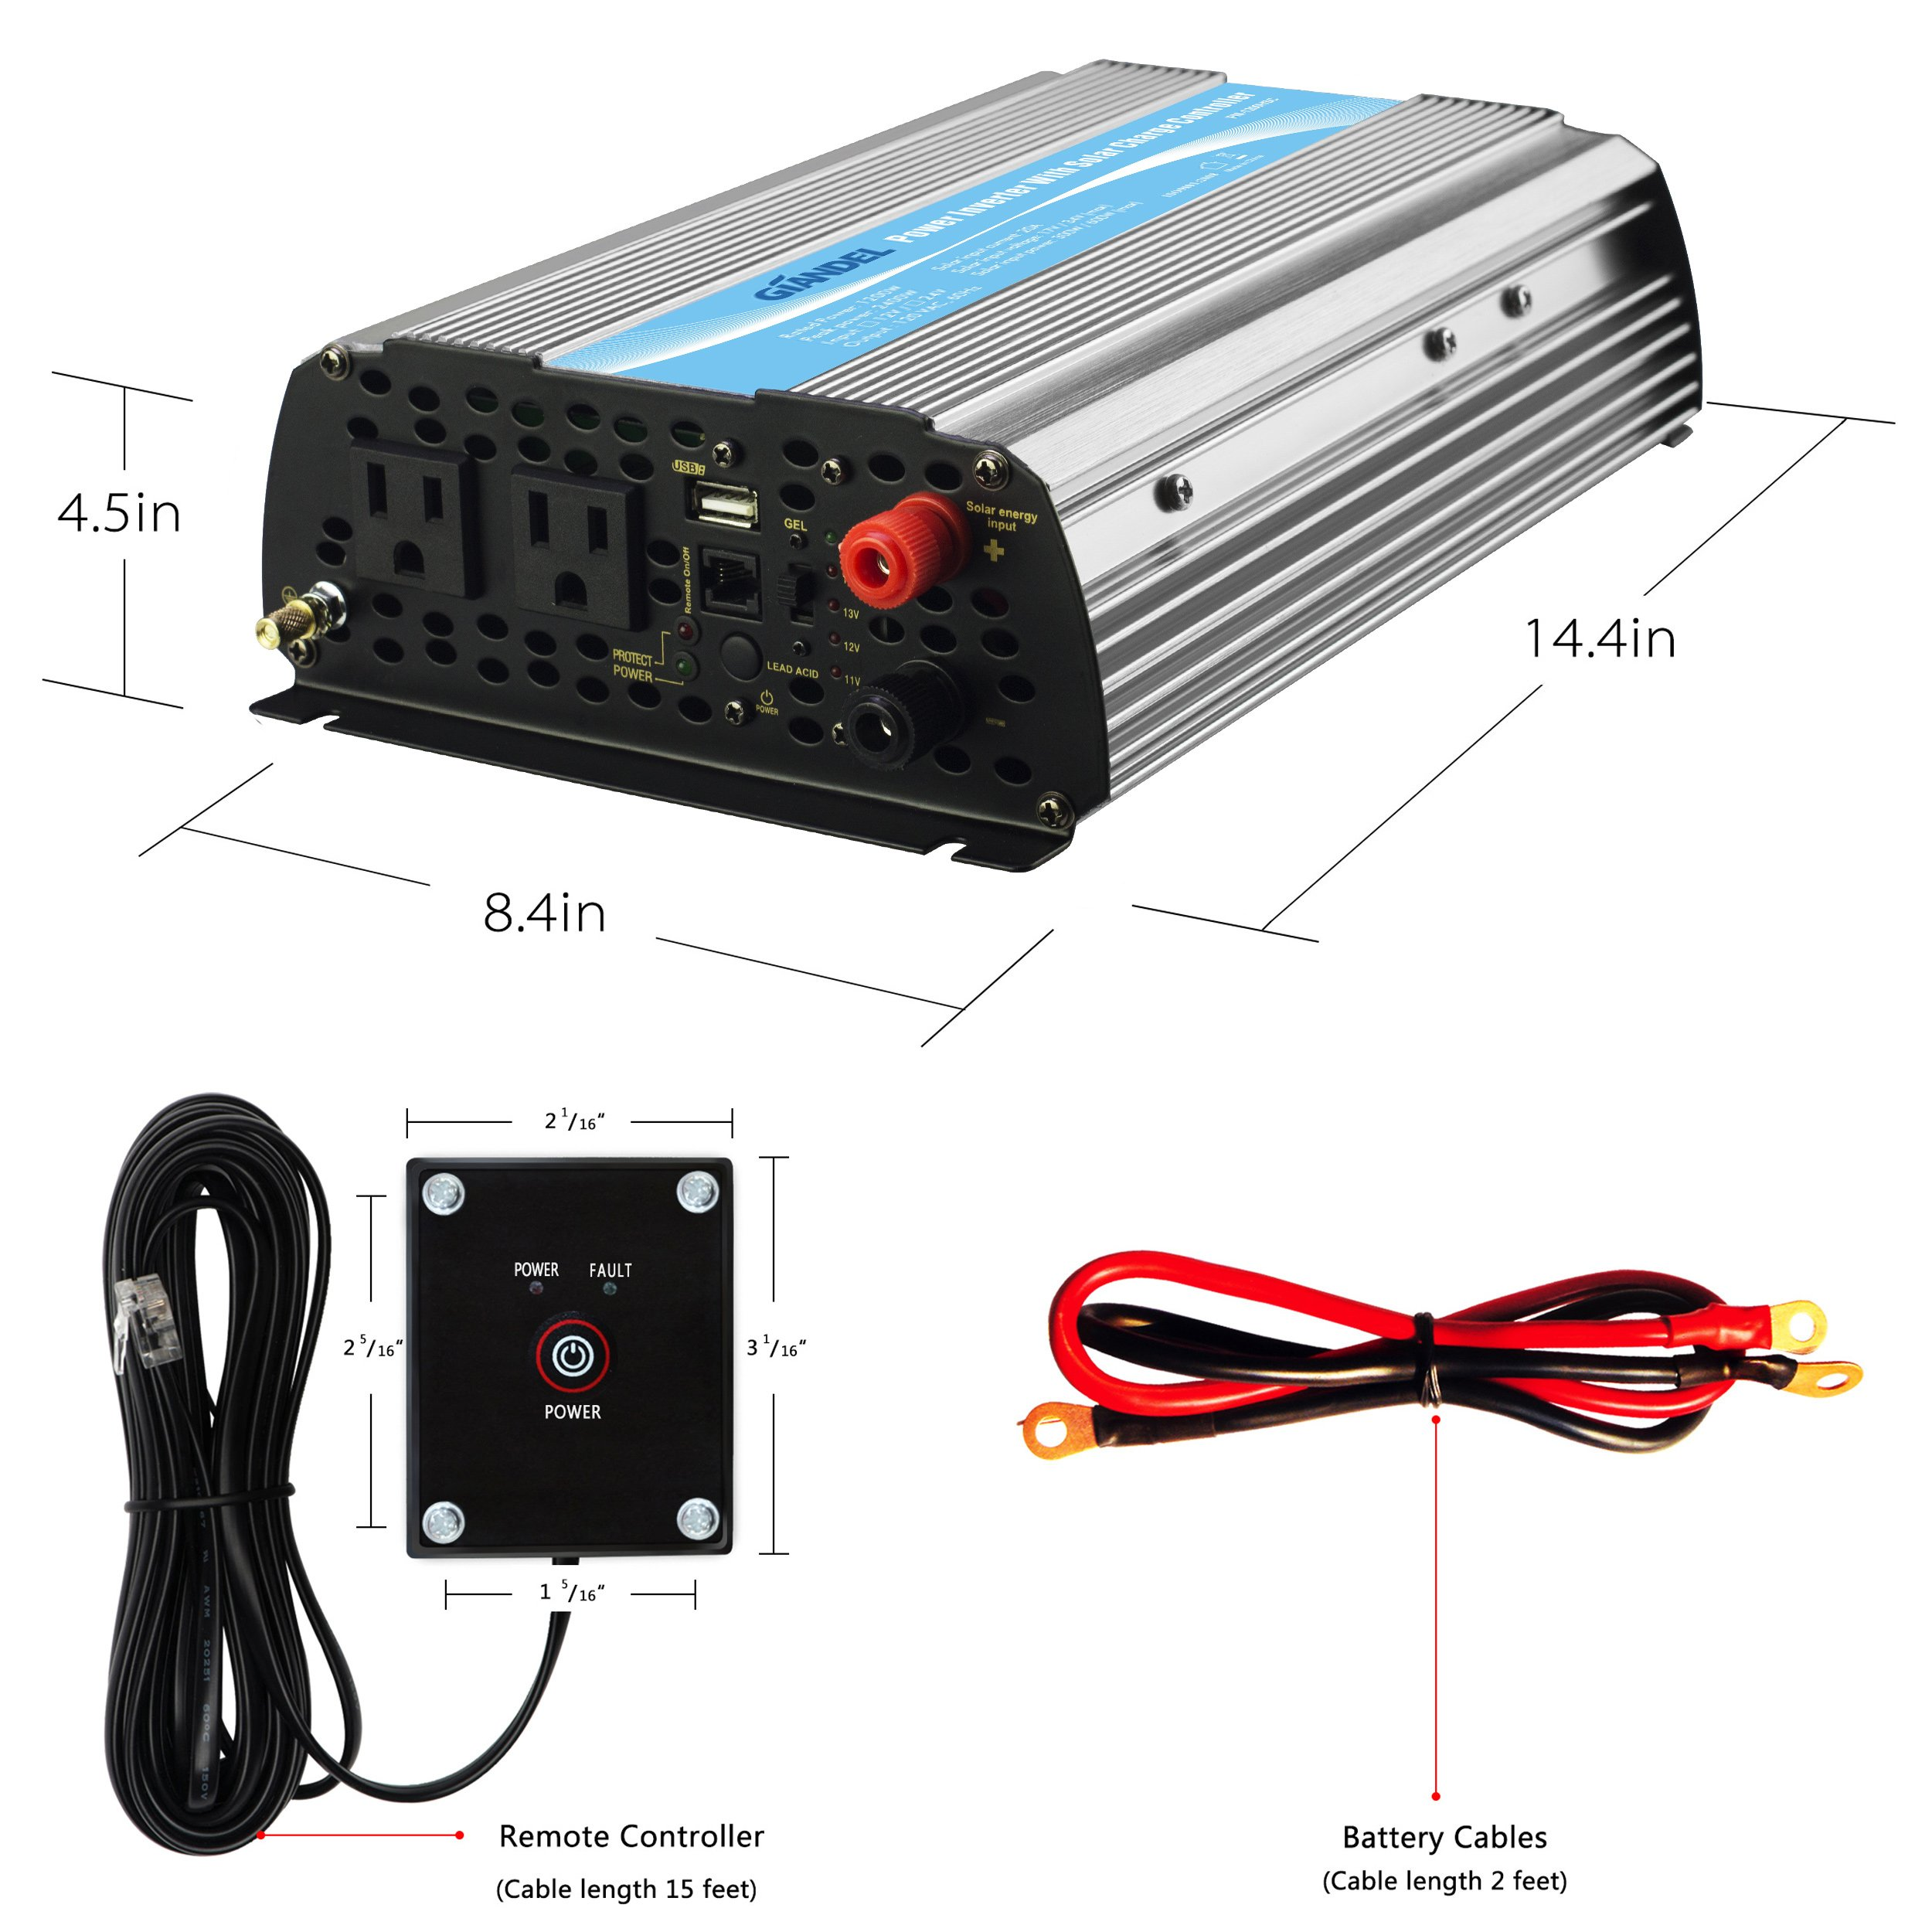 Giandel 1200Watt Power Inverter 12V DC to 110V 120V AC with 20A Solar Charge Controller Remote Control Dual AC Outlets & USB Port for RV Truck Solar System by Giandel (Image #4)